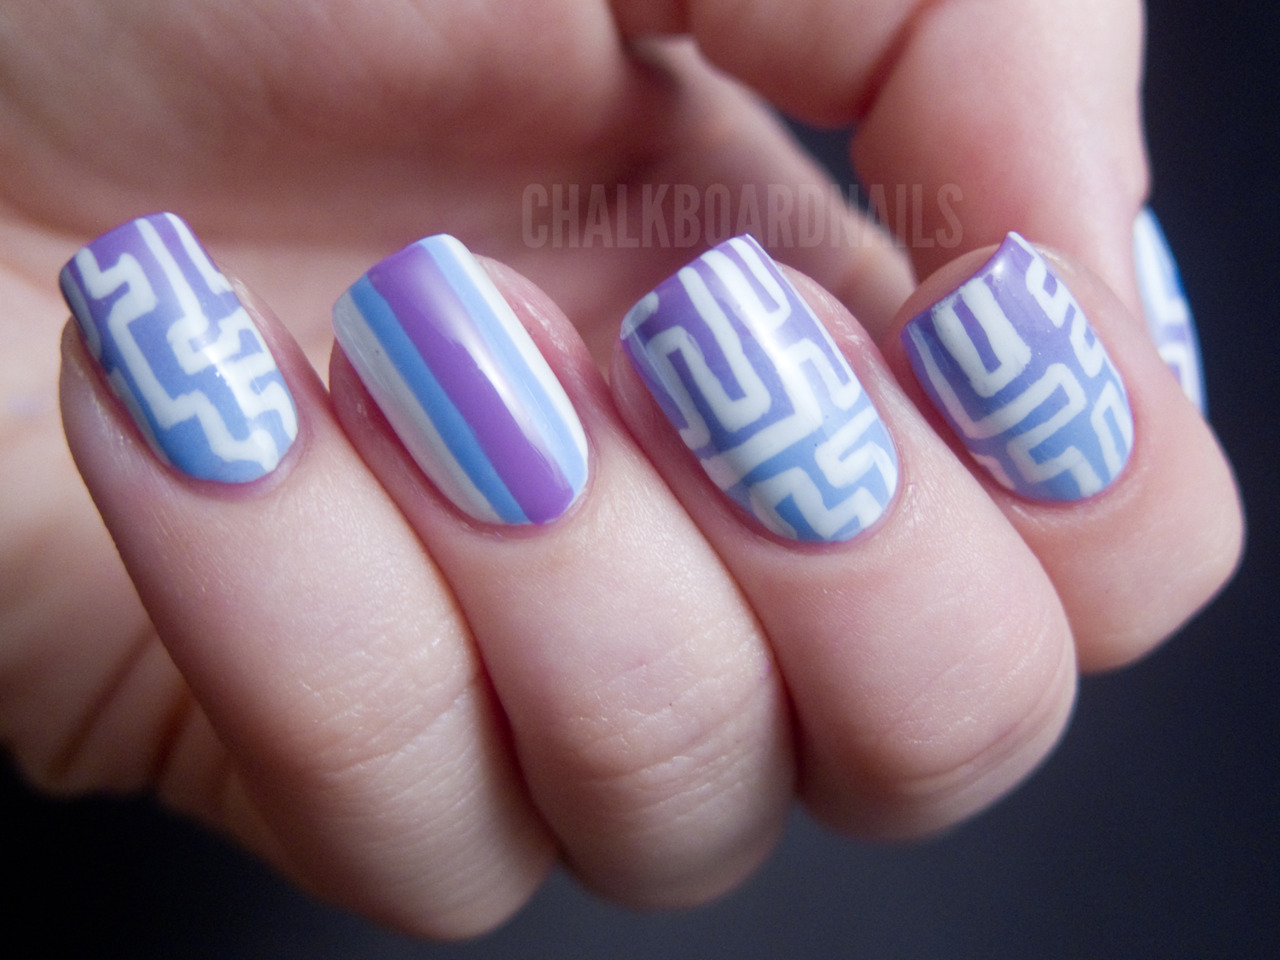 Maze Patterned Gradient Nails Essie Bikini So TeenyEssie Play DateEssie Blanc